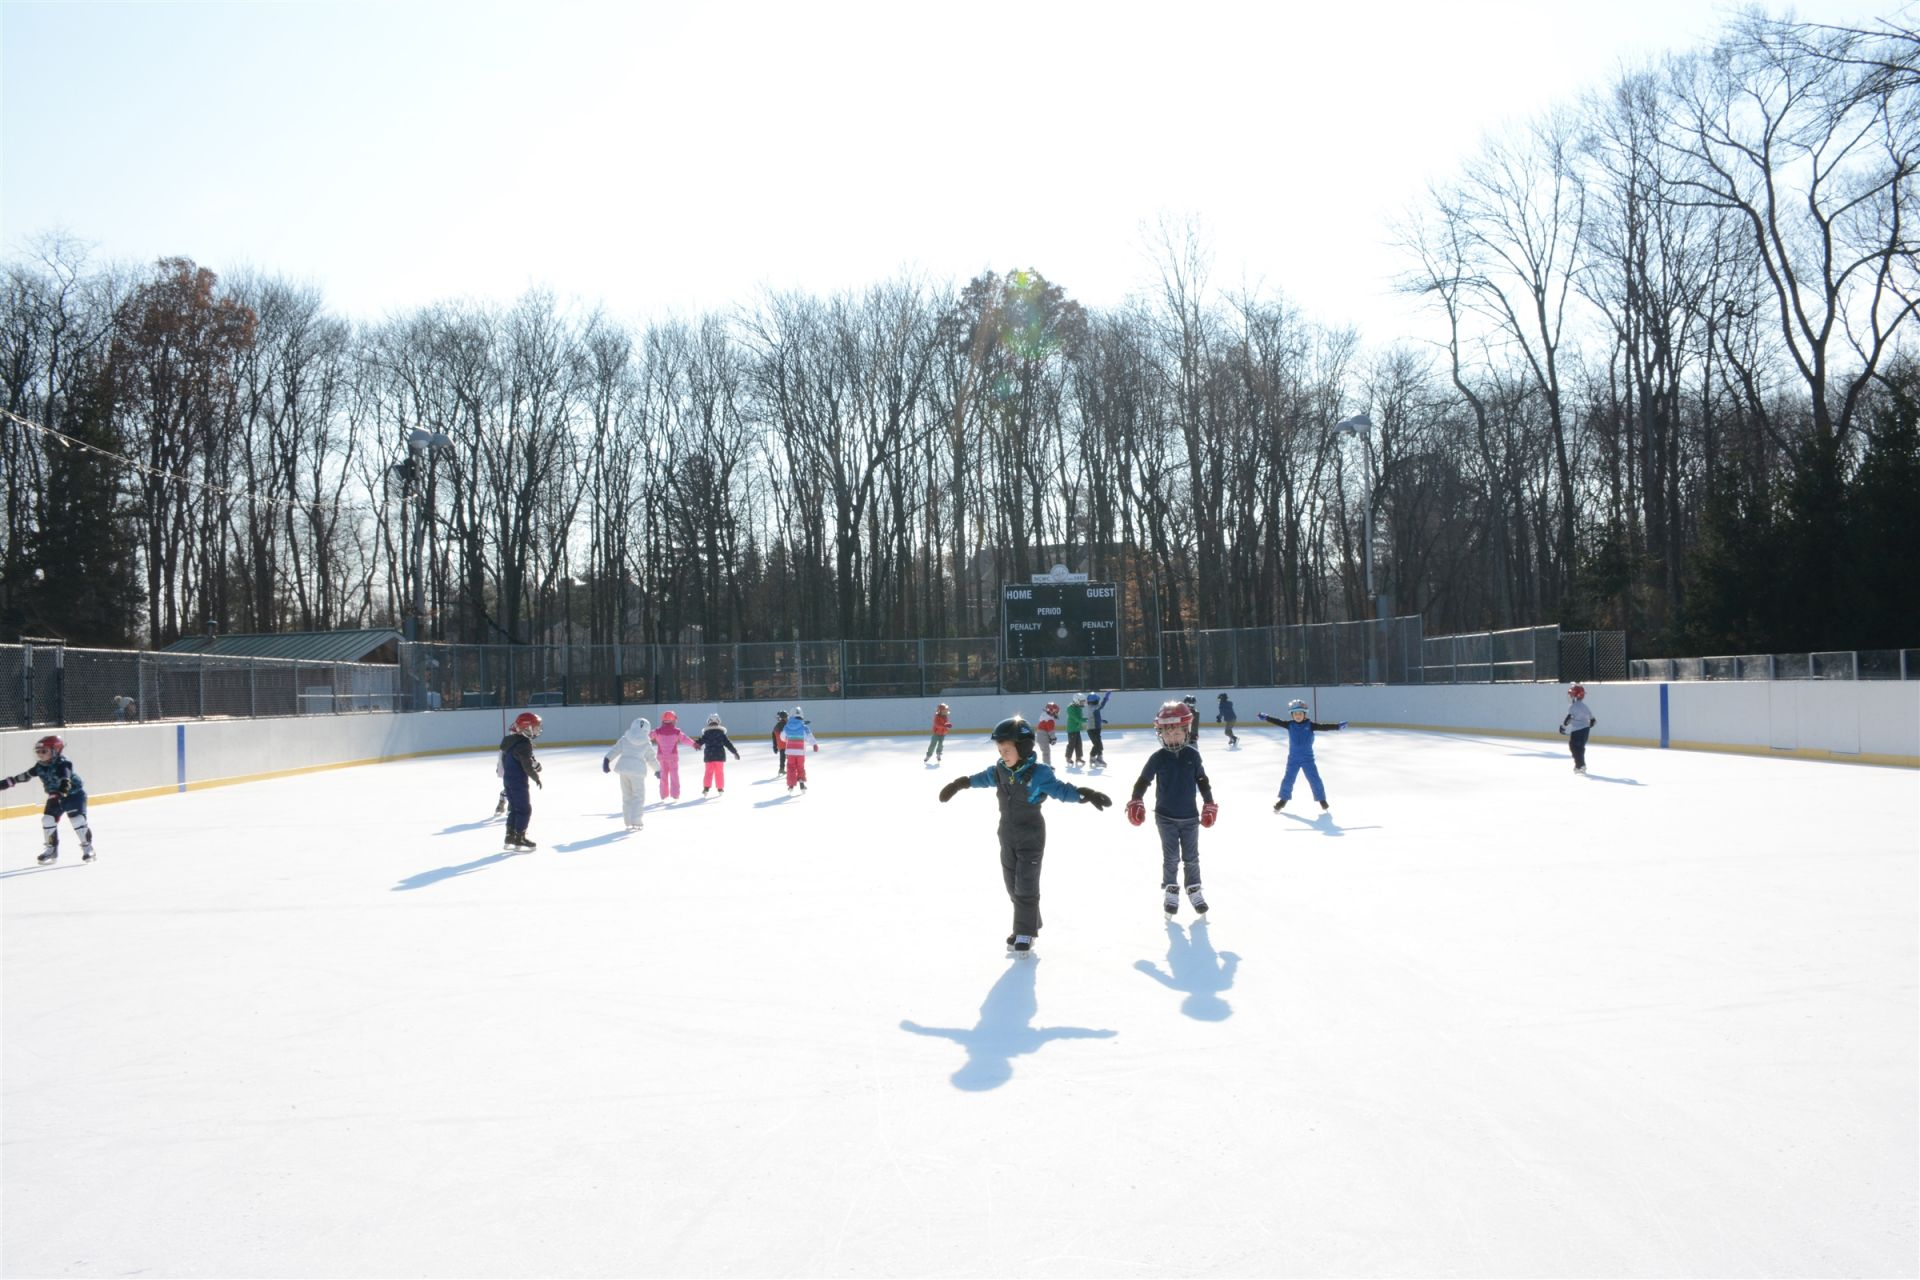 Children skate every week during the winter trimester